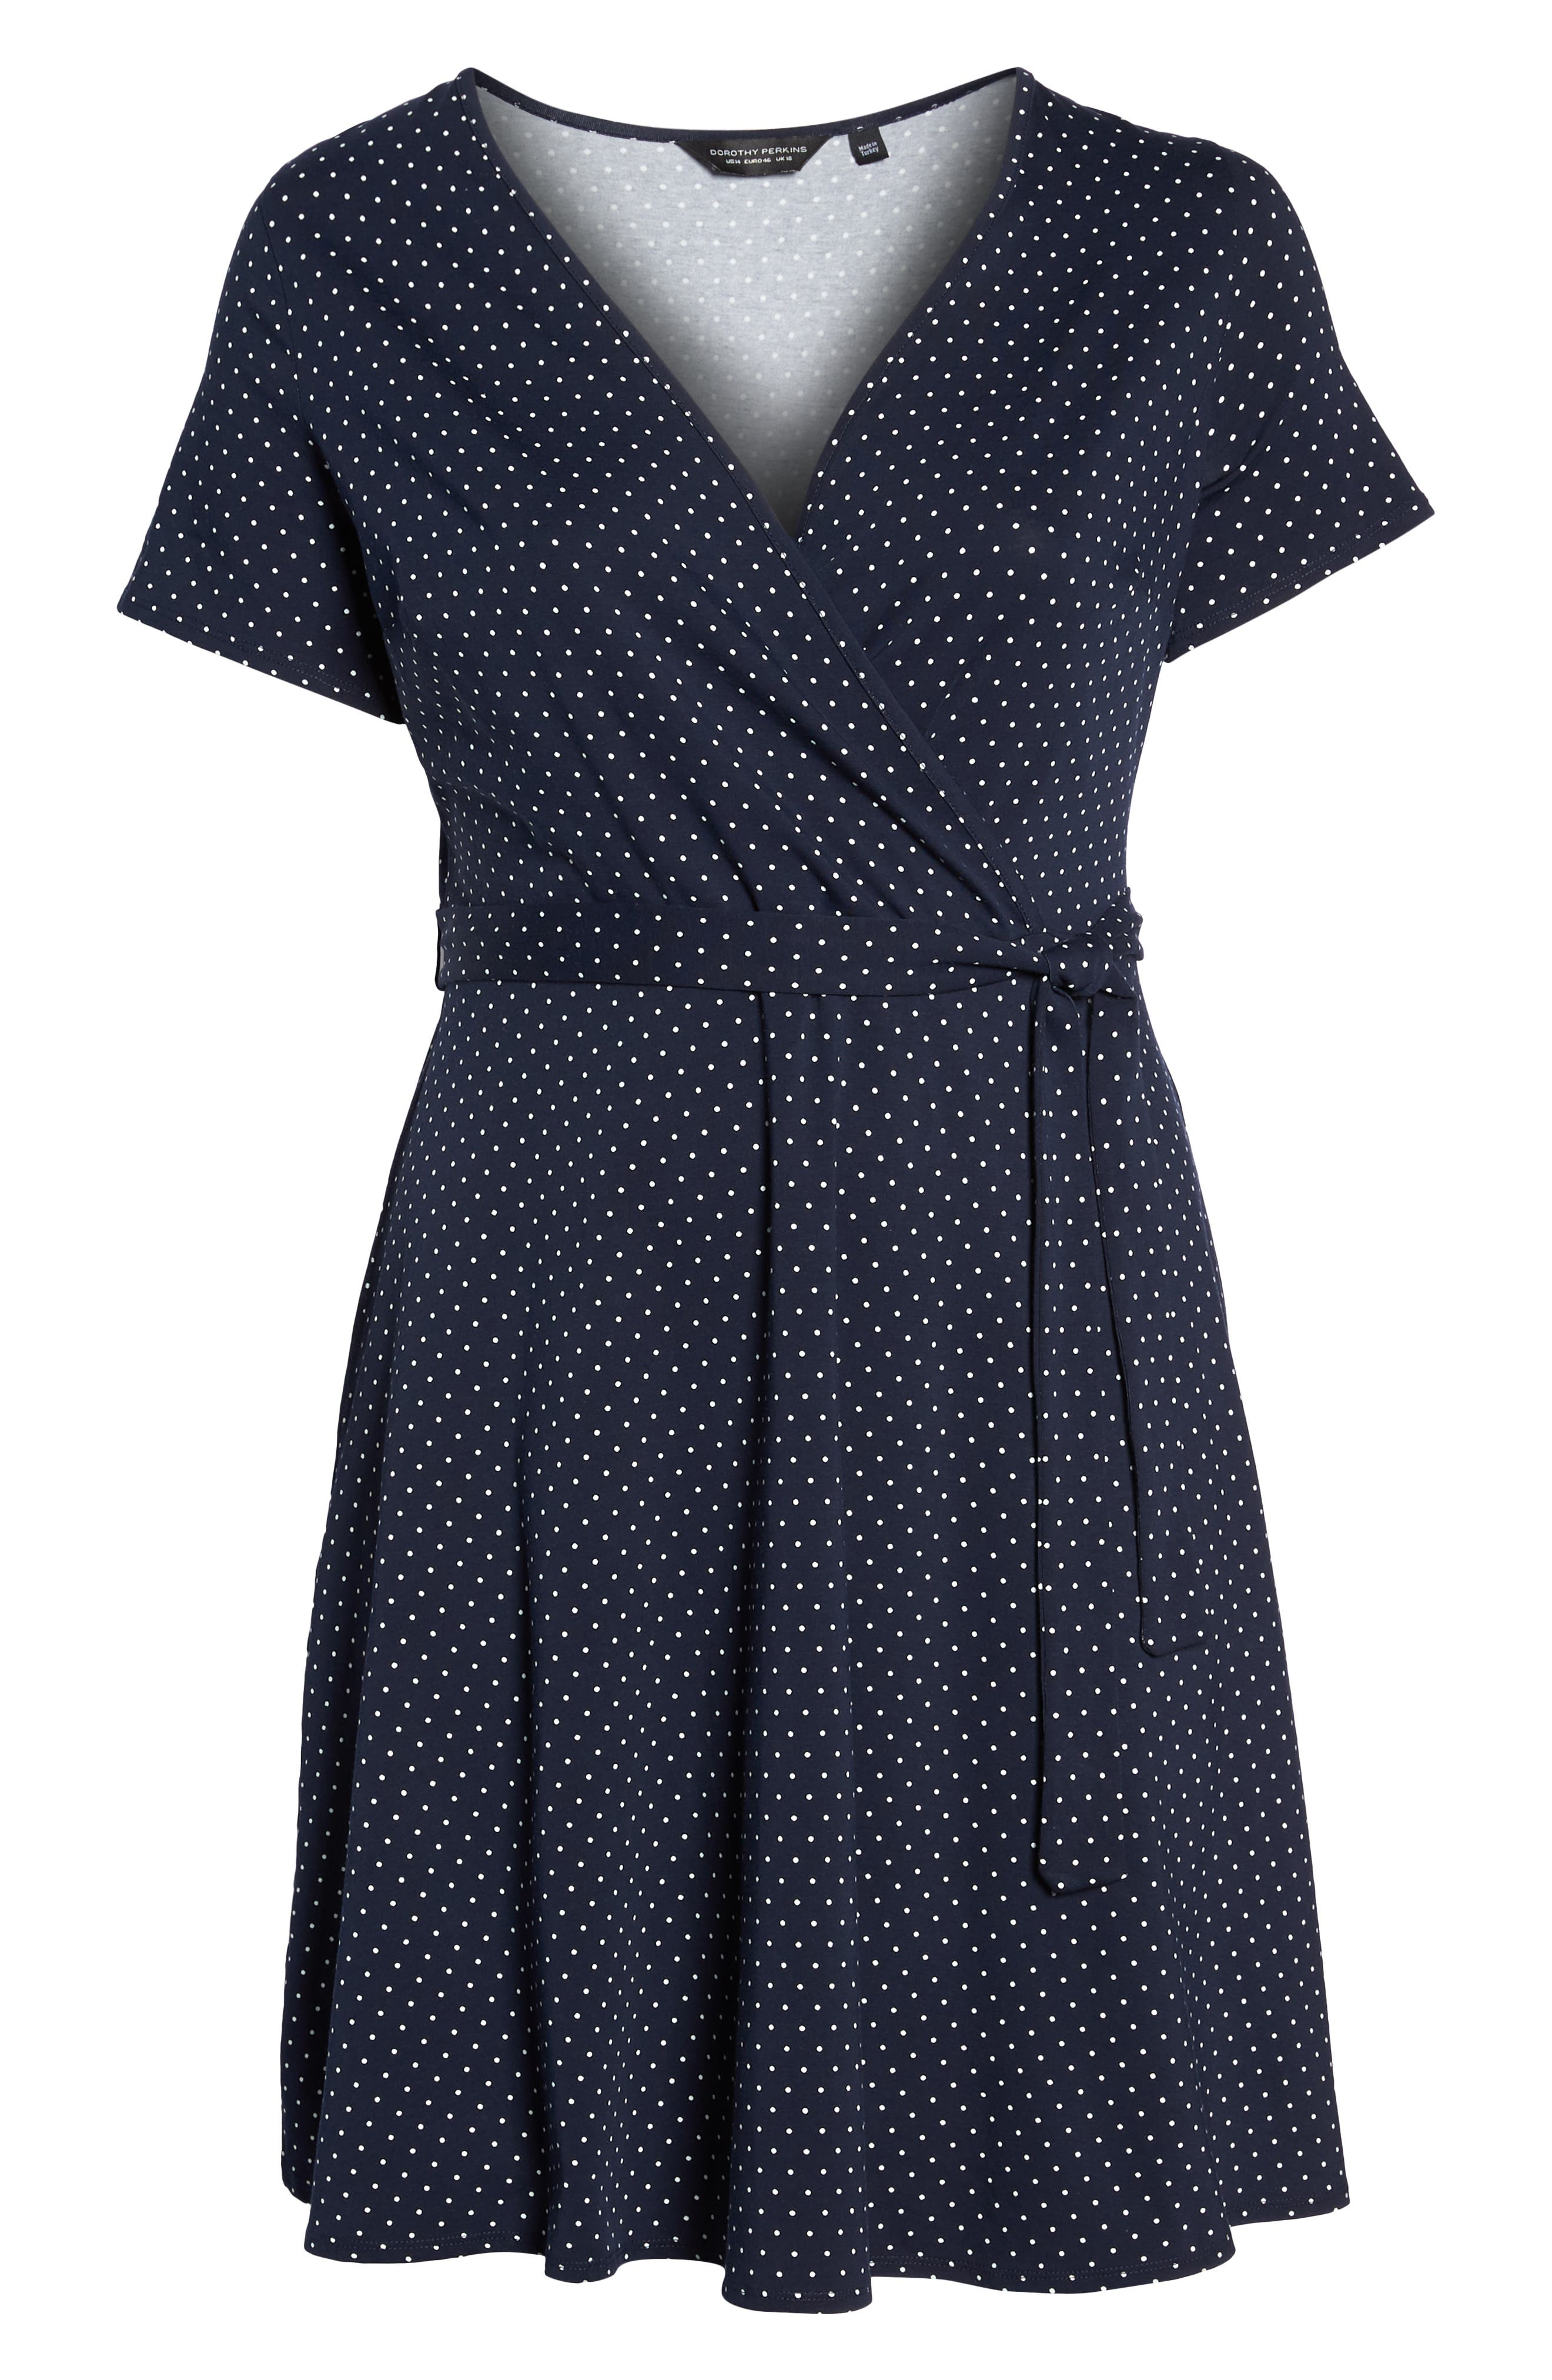 Spot Fit & Flare Wrap Dress,                             Alternate thumbnail 7, color,                             400